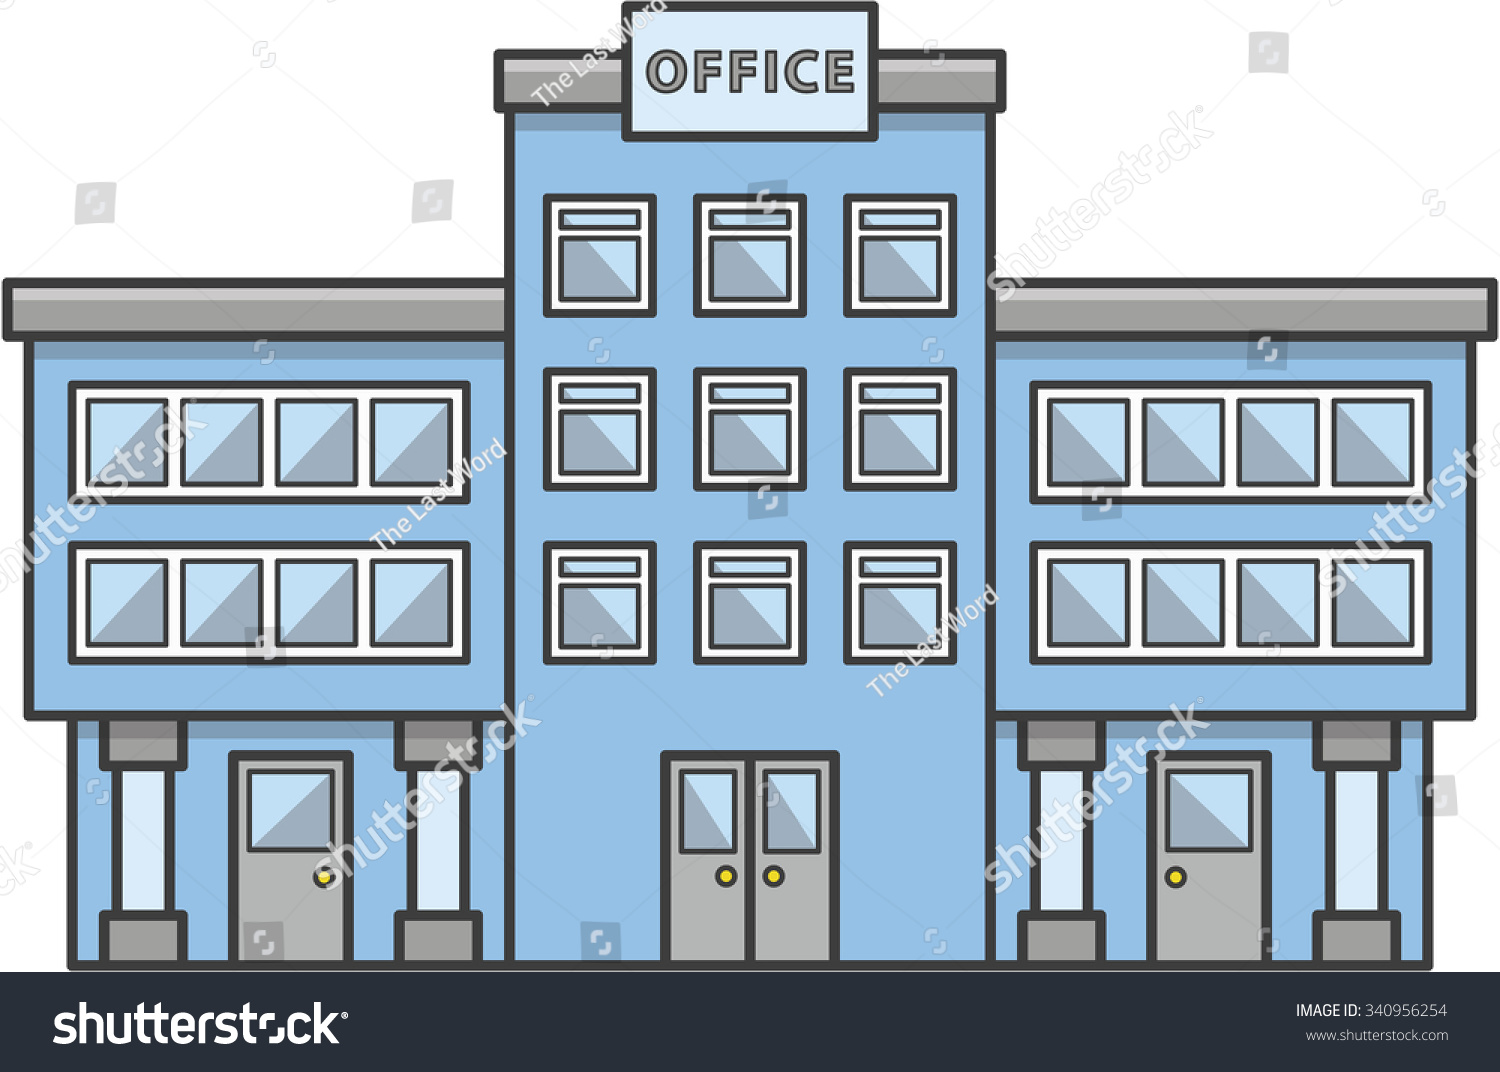 Office Building Doodle Illustration Cartoon Stock Vector Royalty Free 340956254